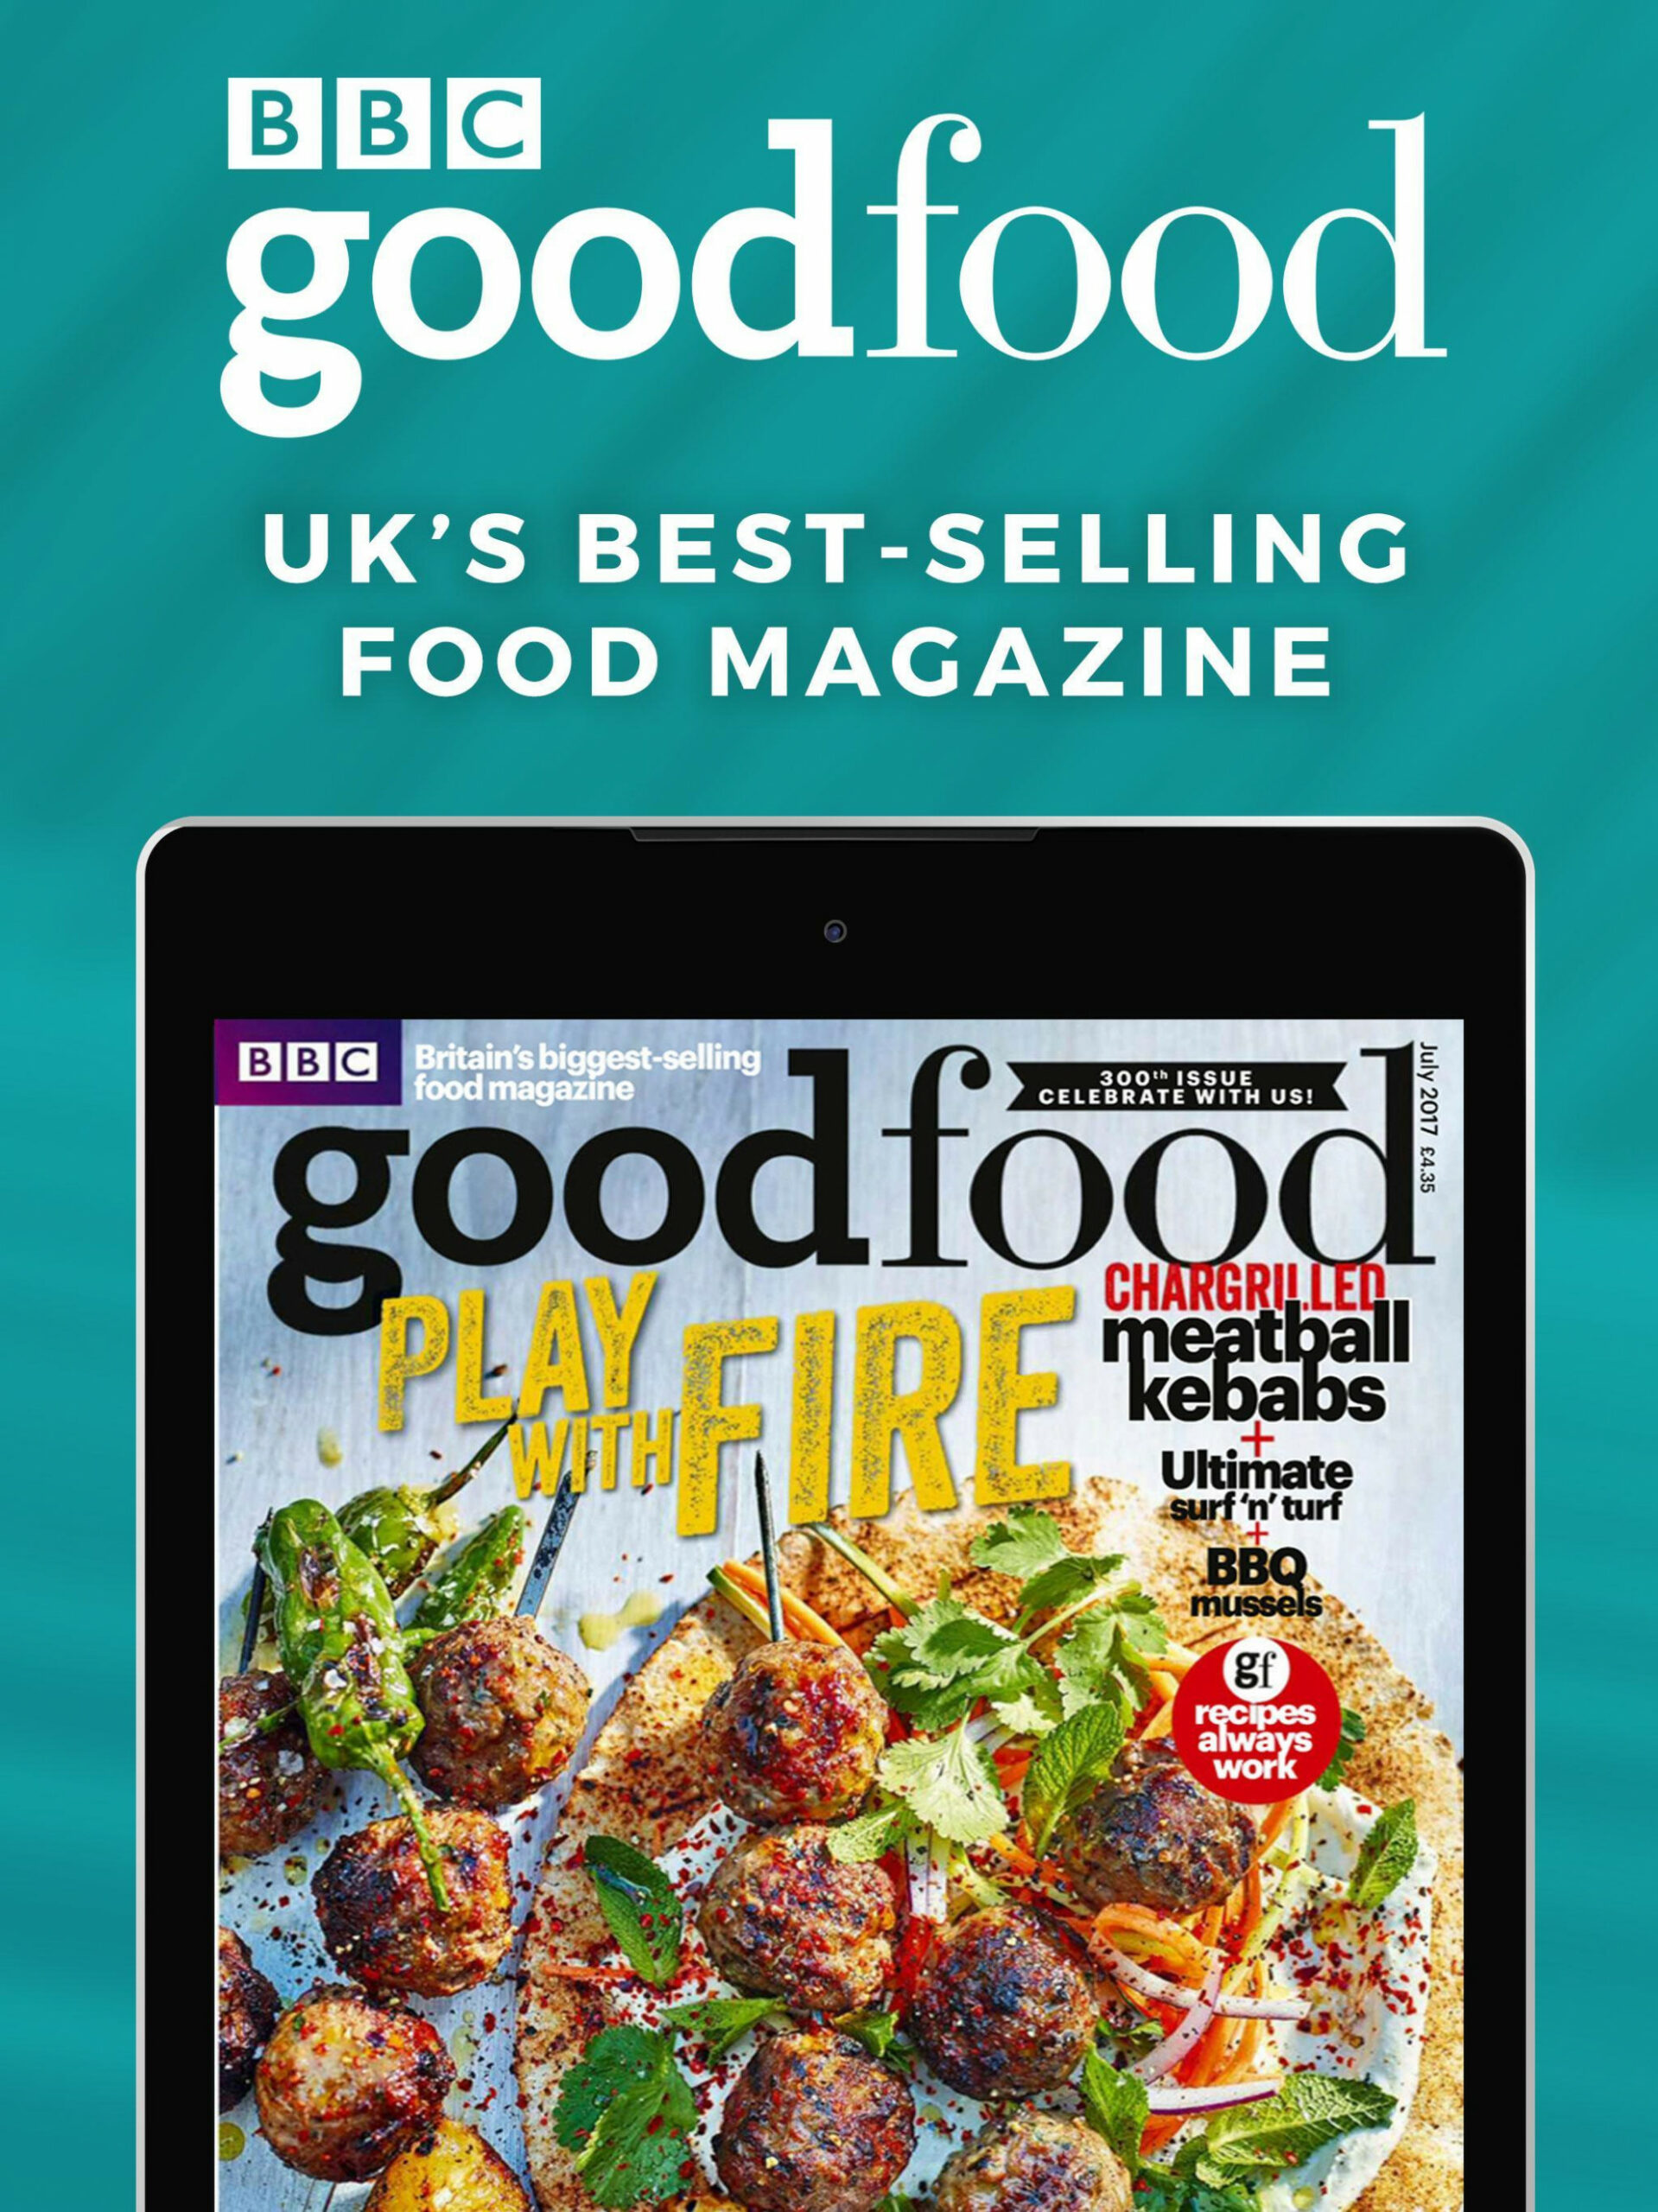 BBC Good Food Magazine for Android - APK Download - recipes good food uk